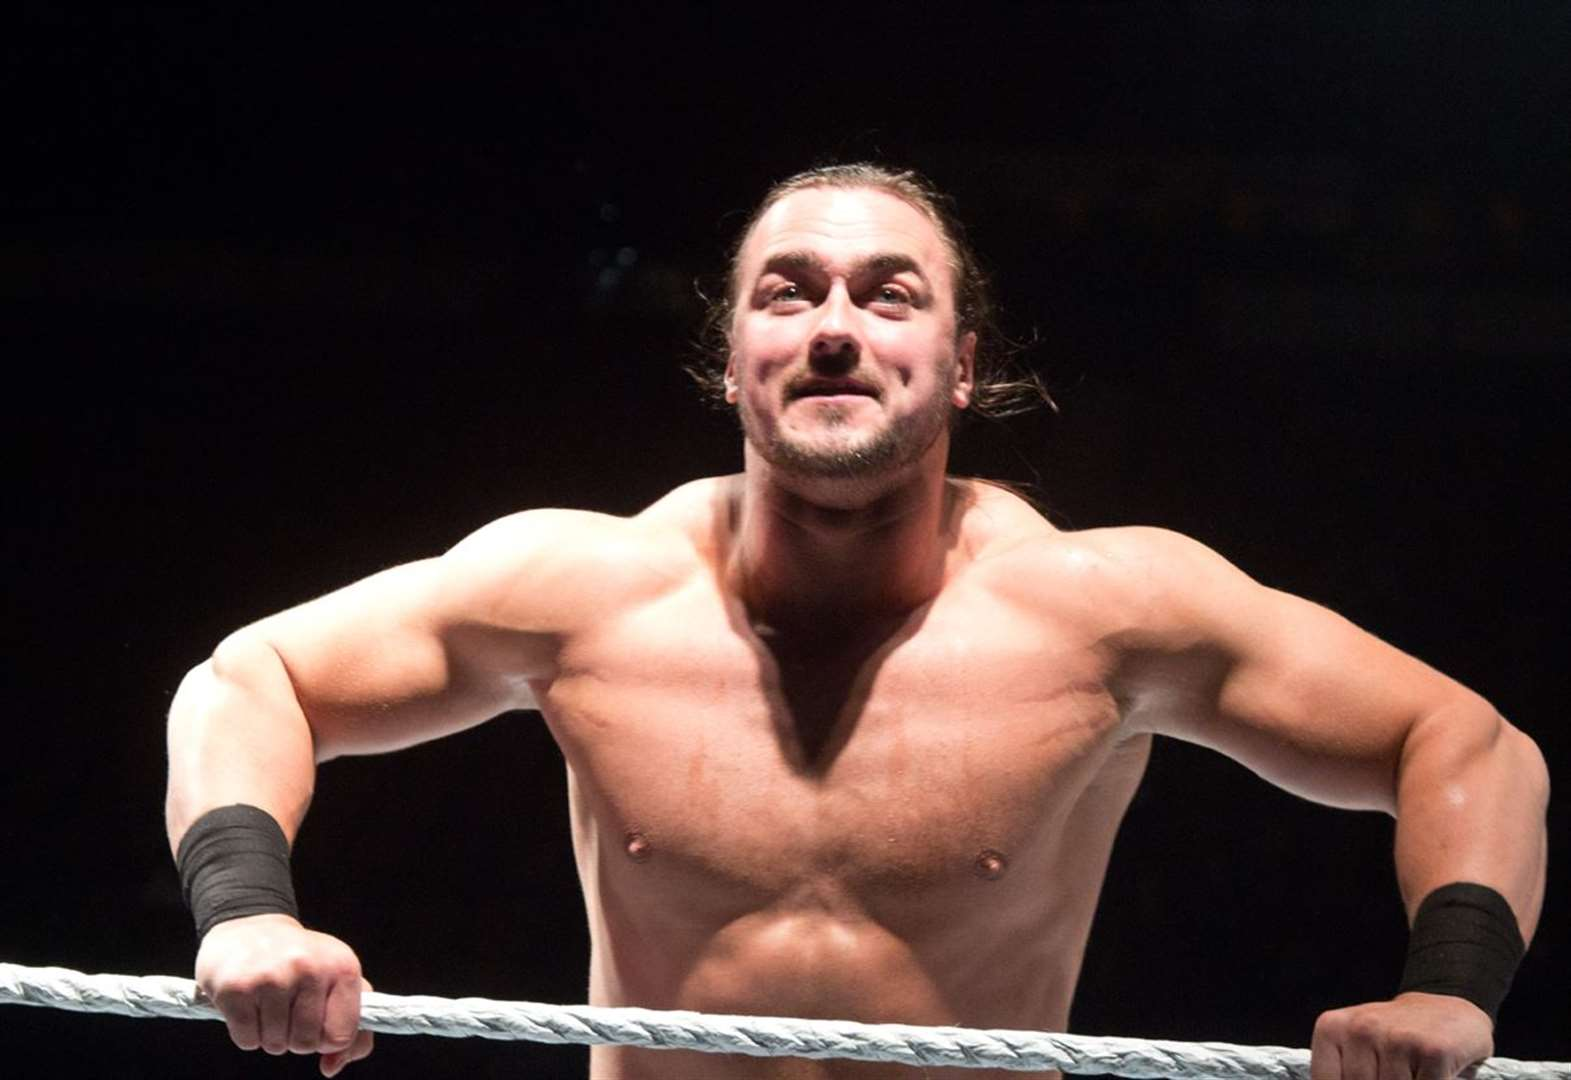 WATCH: Wrestling superstar Drew McIntyre trains in the Highlands ahead of WrestleMania